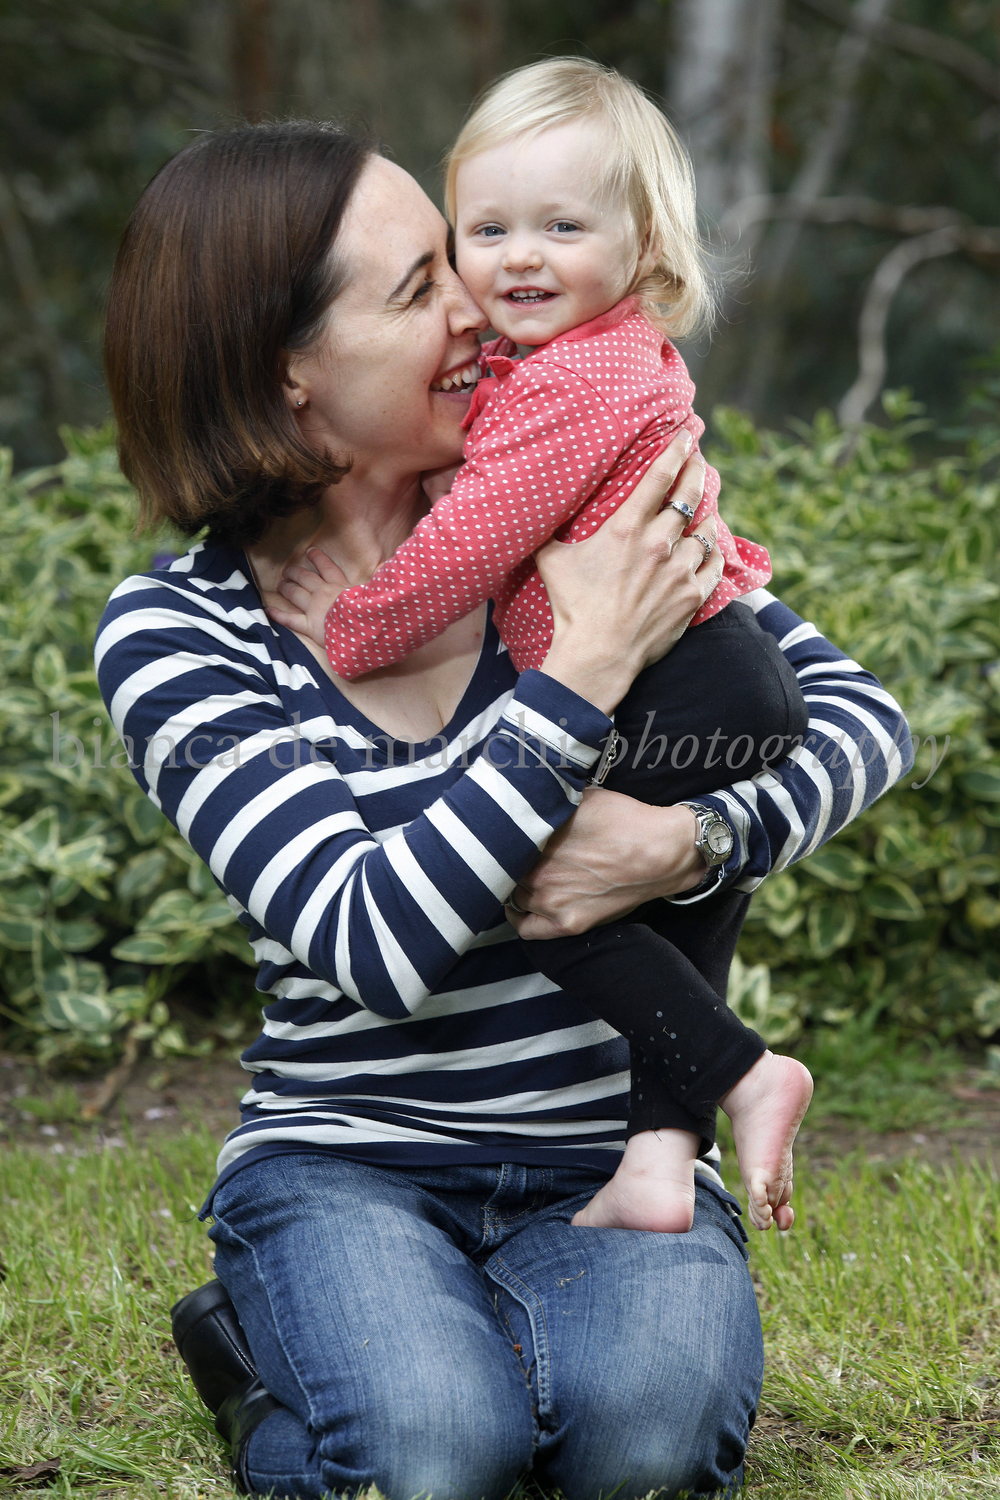 CHP_Export_97677335_Story on importance of breast feeding %5BL-R%5D Australian Breastfeeding Association.jpg